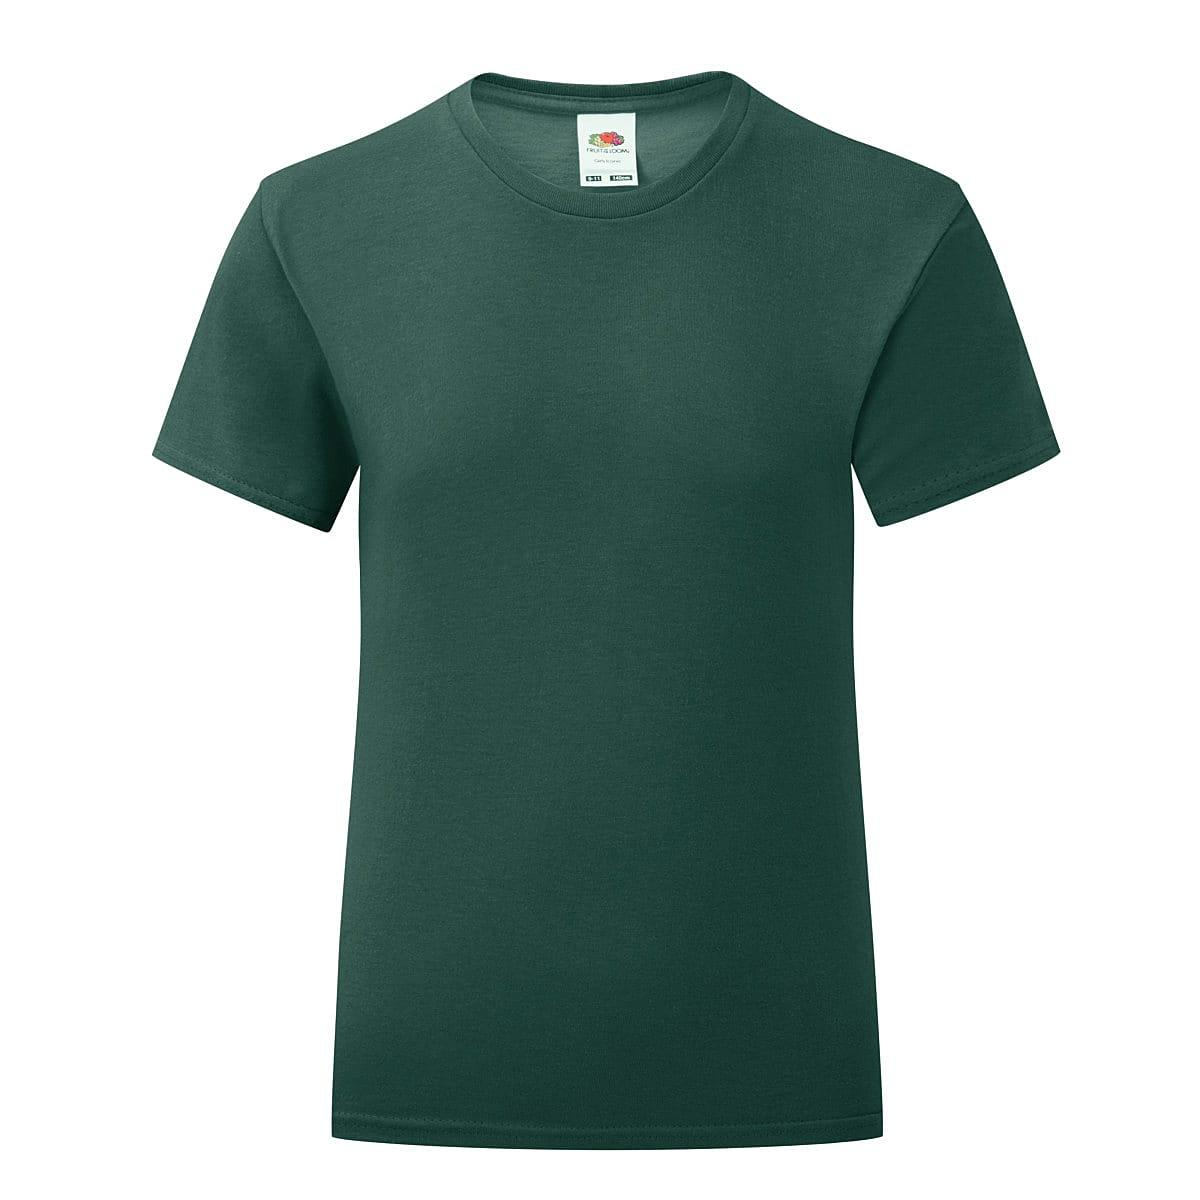 Fruit Of The Loom Girls Iconic T-Shirt in Forest Green (Product Code: 61025)